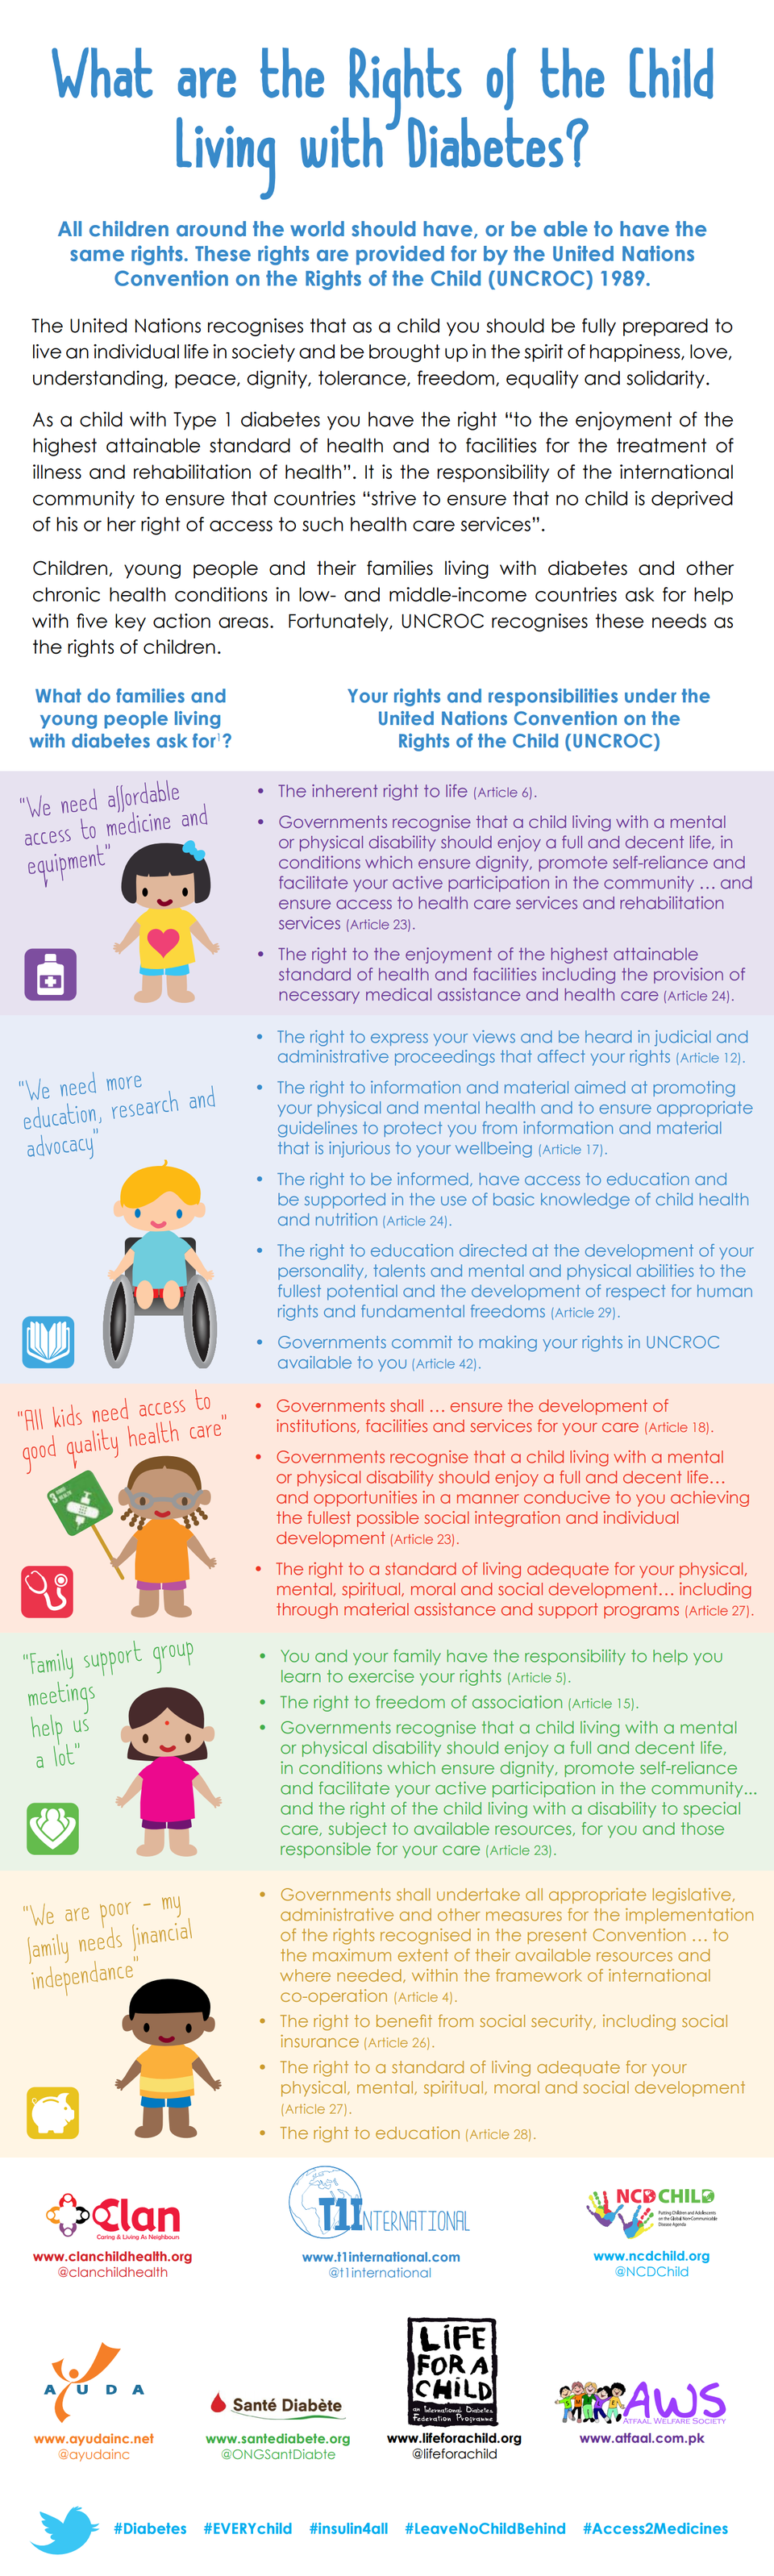 This is a screenshot snippet of the Rights of the Child with Type 1 Diabetes PDF document